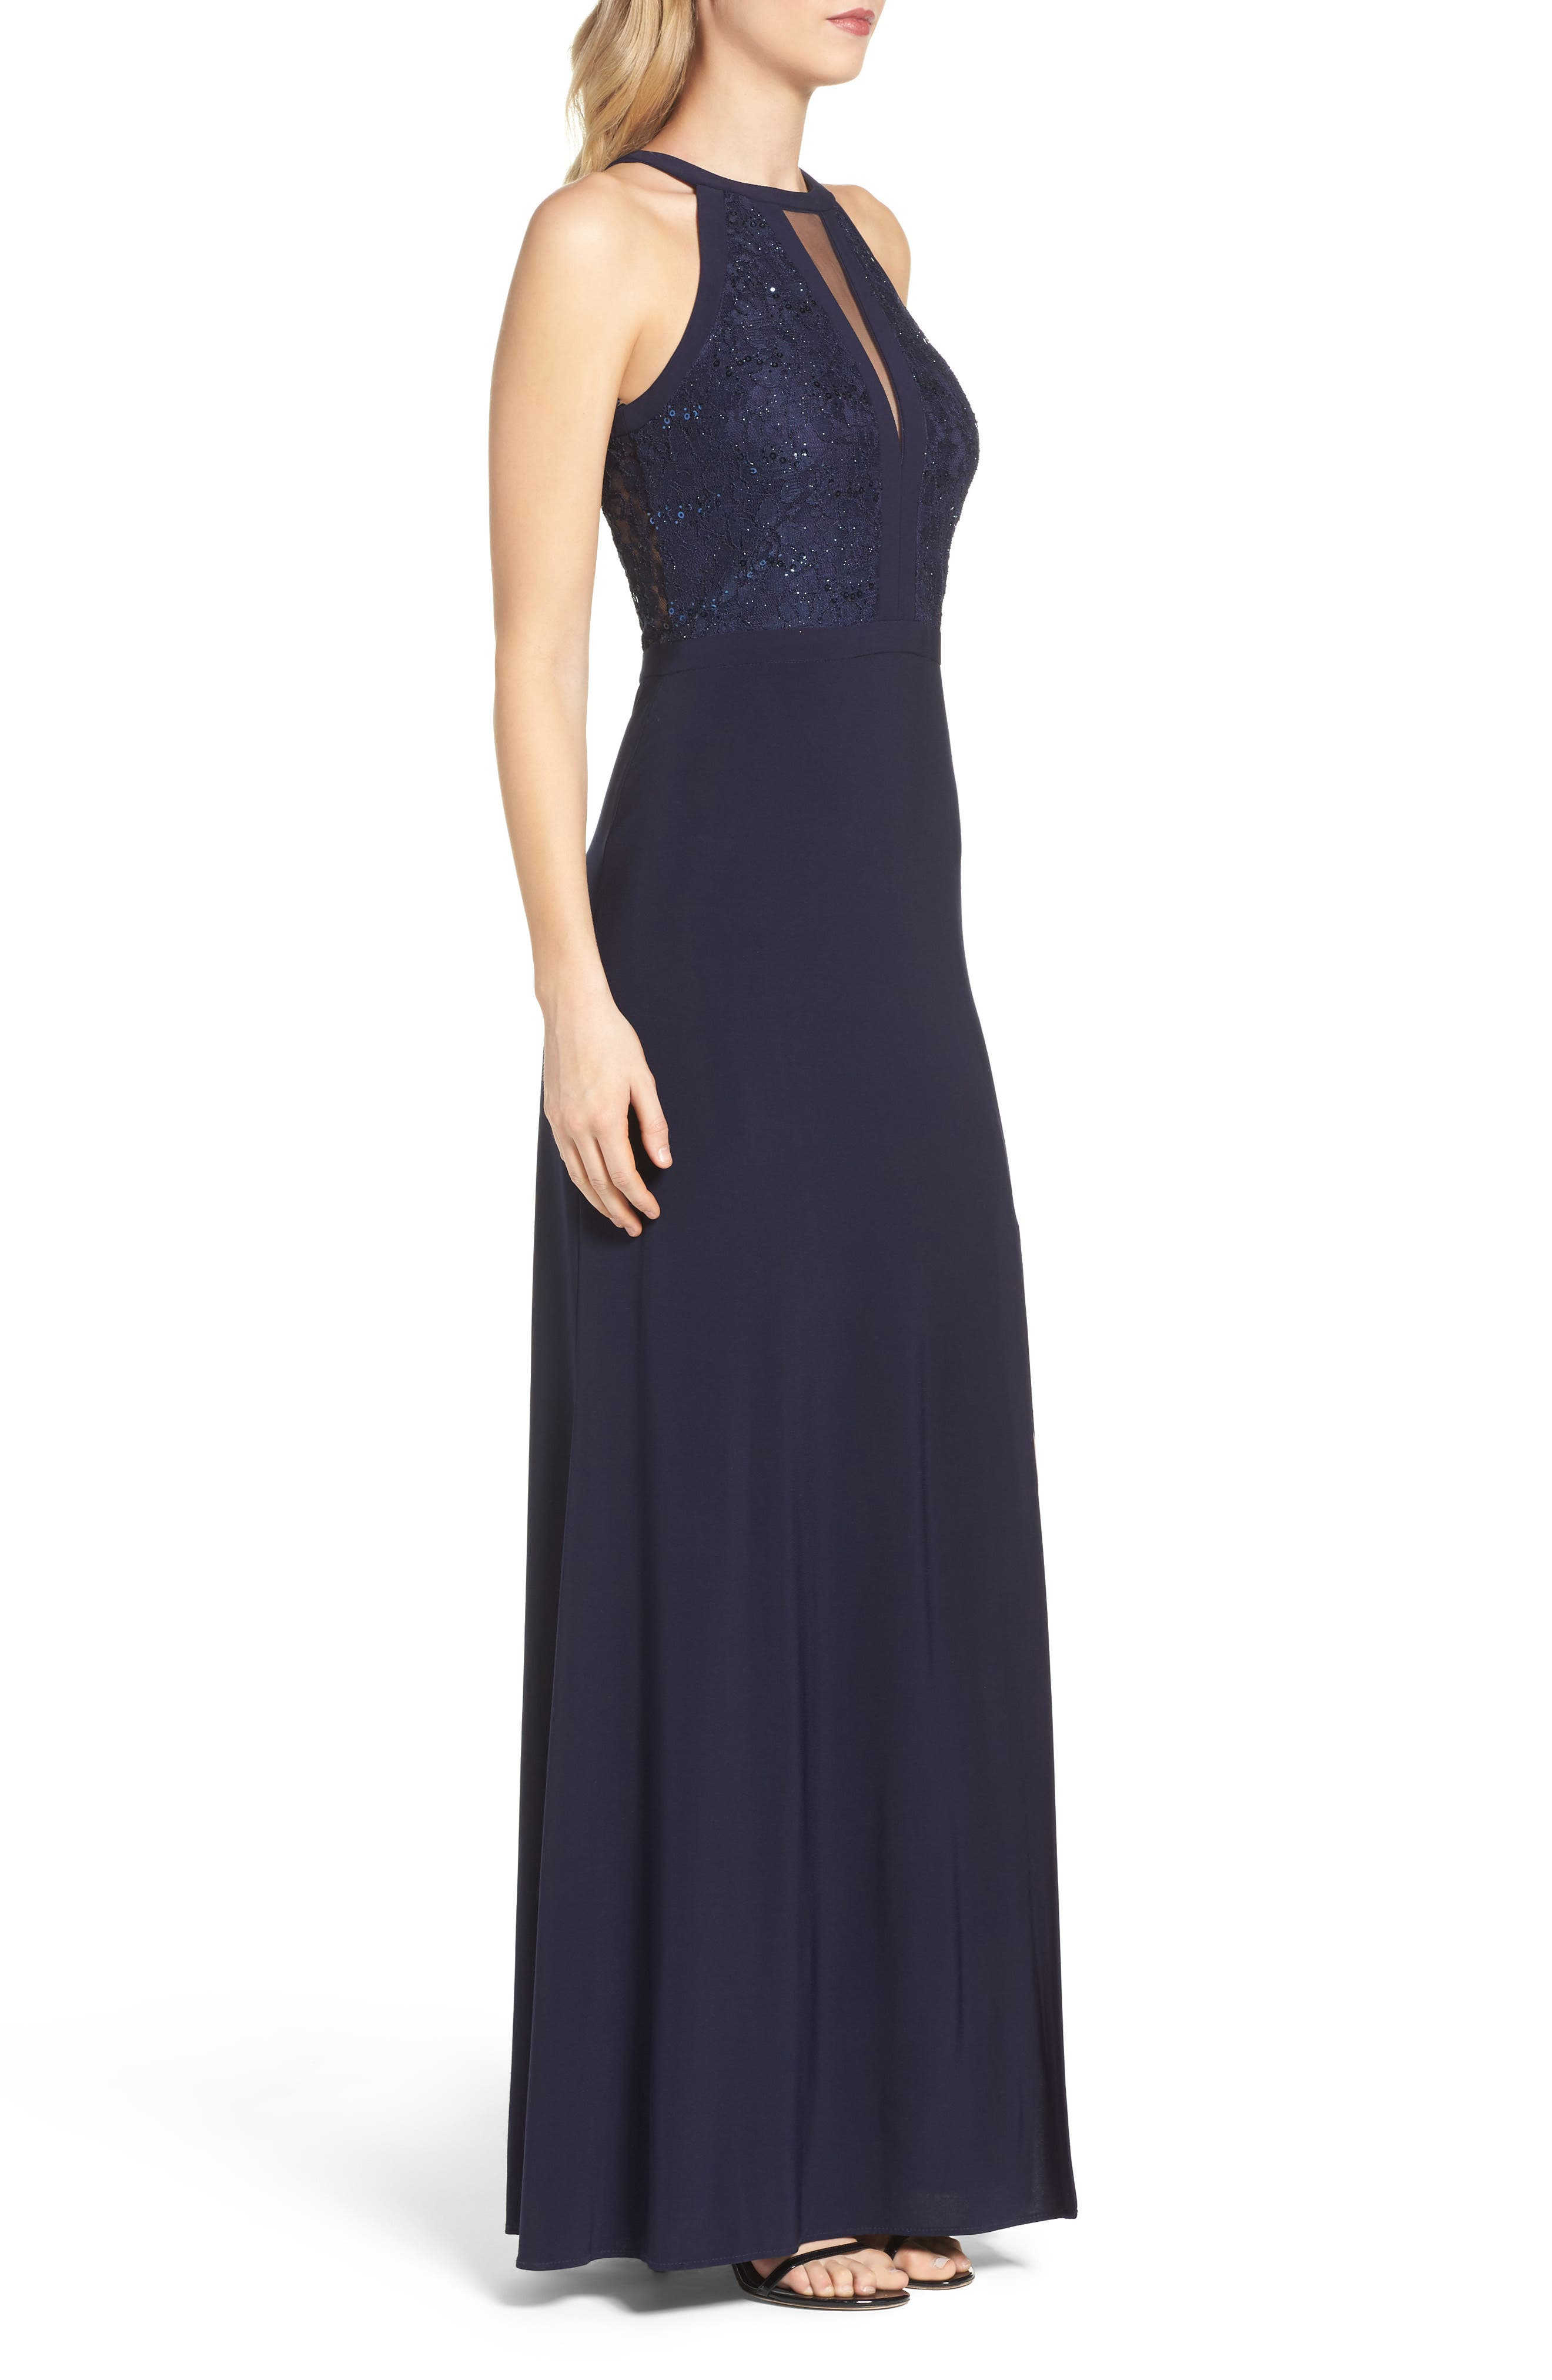 MORGAN & CO., Lace & Jersey Gown, Alternate thumbnail 4, color, NAVY